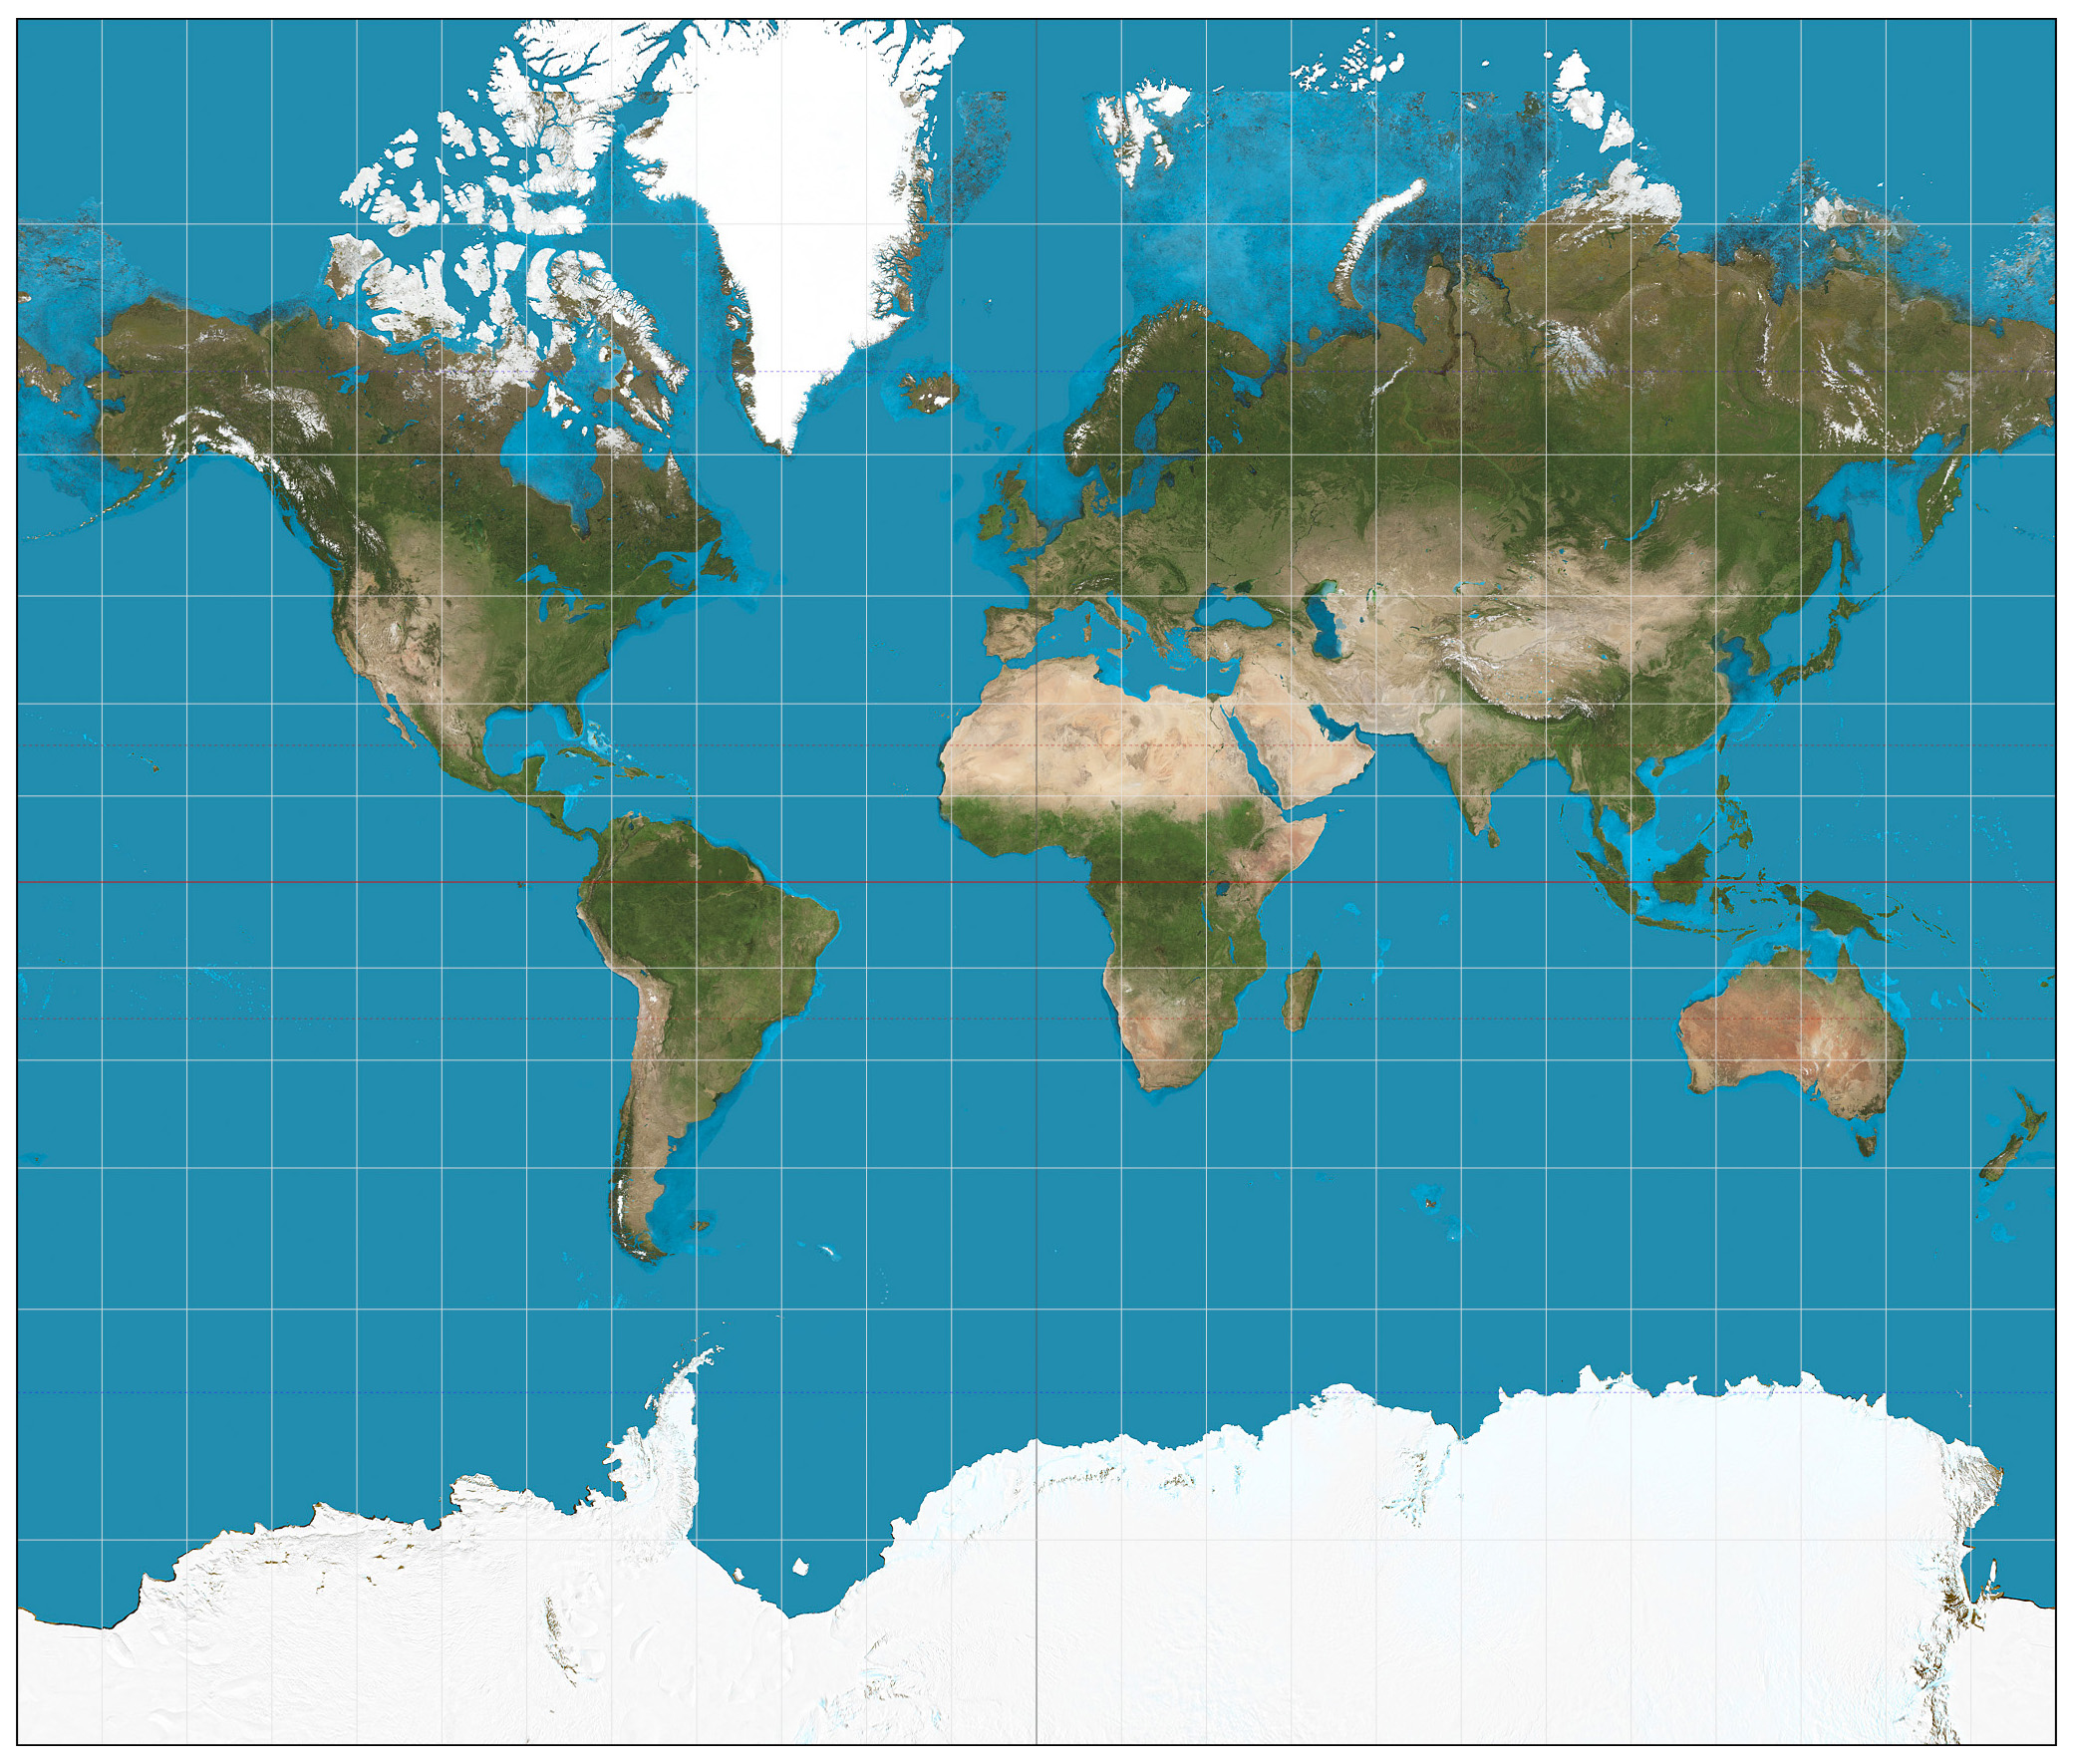 Map Of The World Satellite.Satellite Map Of The World World Mapsland Maps Of The World